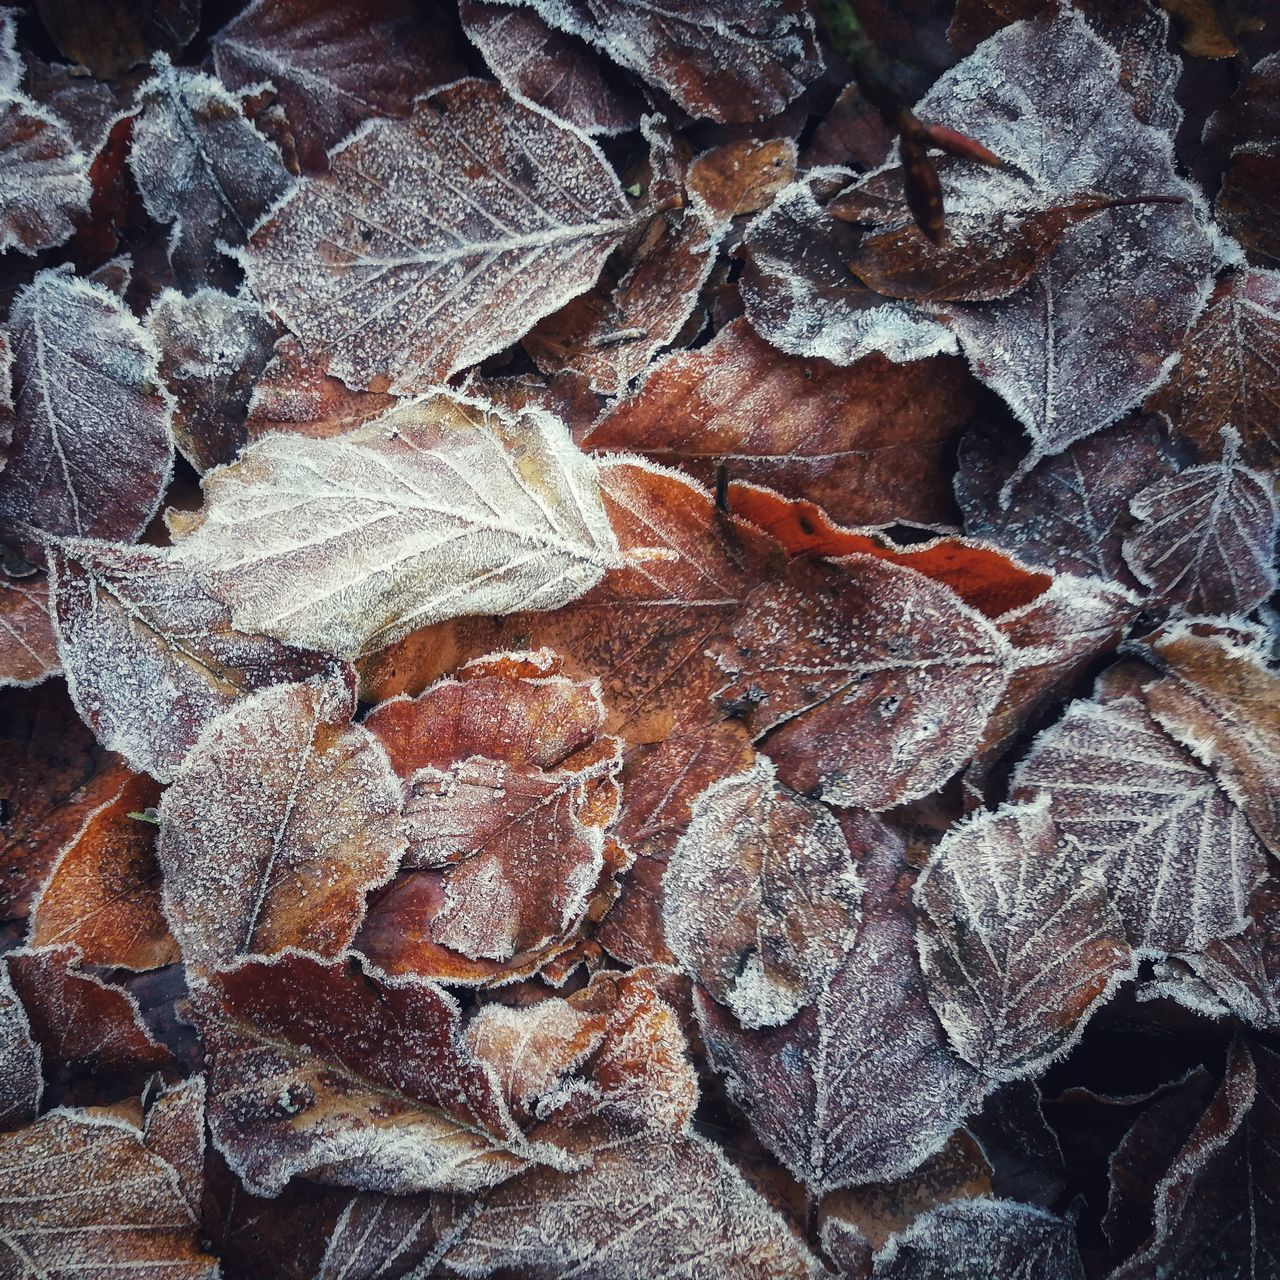 leaf, change, no people, nature, backgrounds, full frame, autumn, outdoors, day, close-up, fragility, beauty in nature